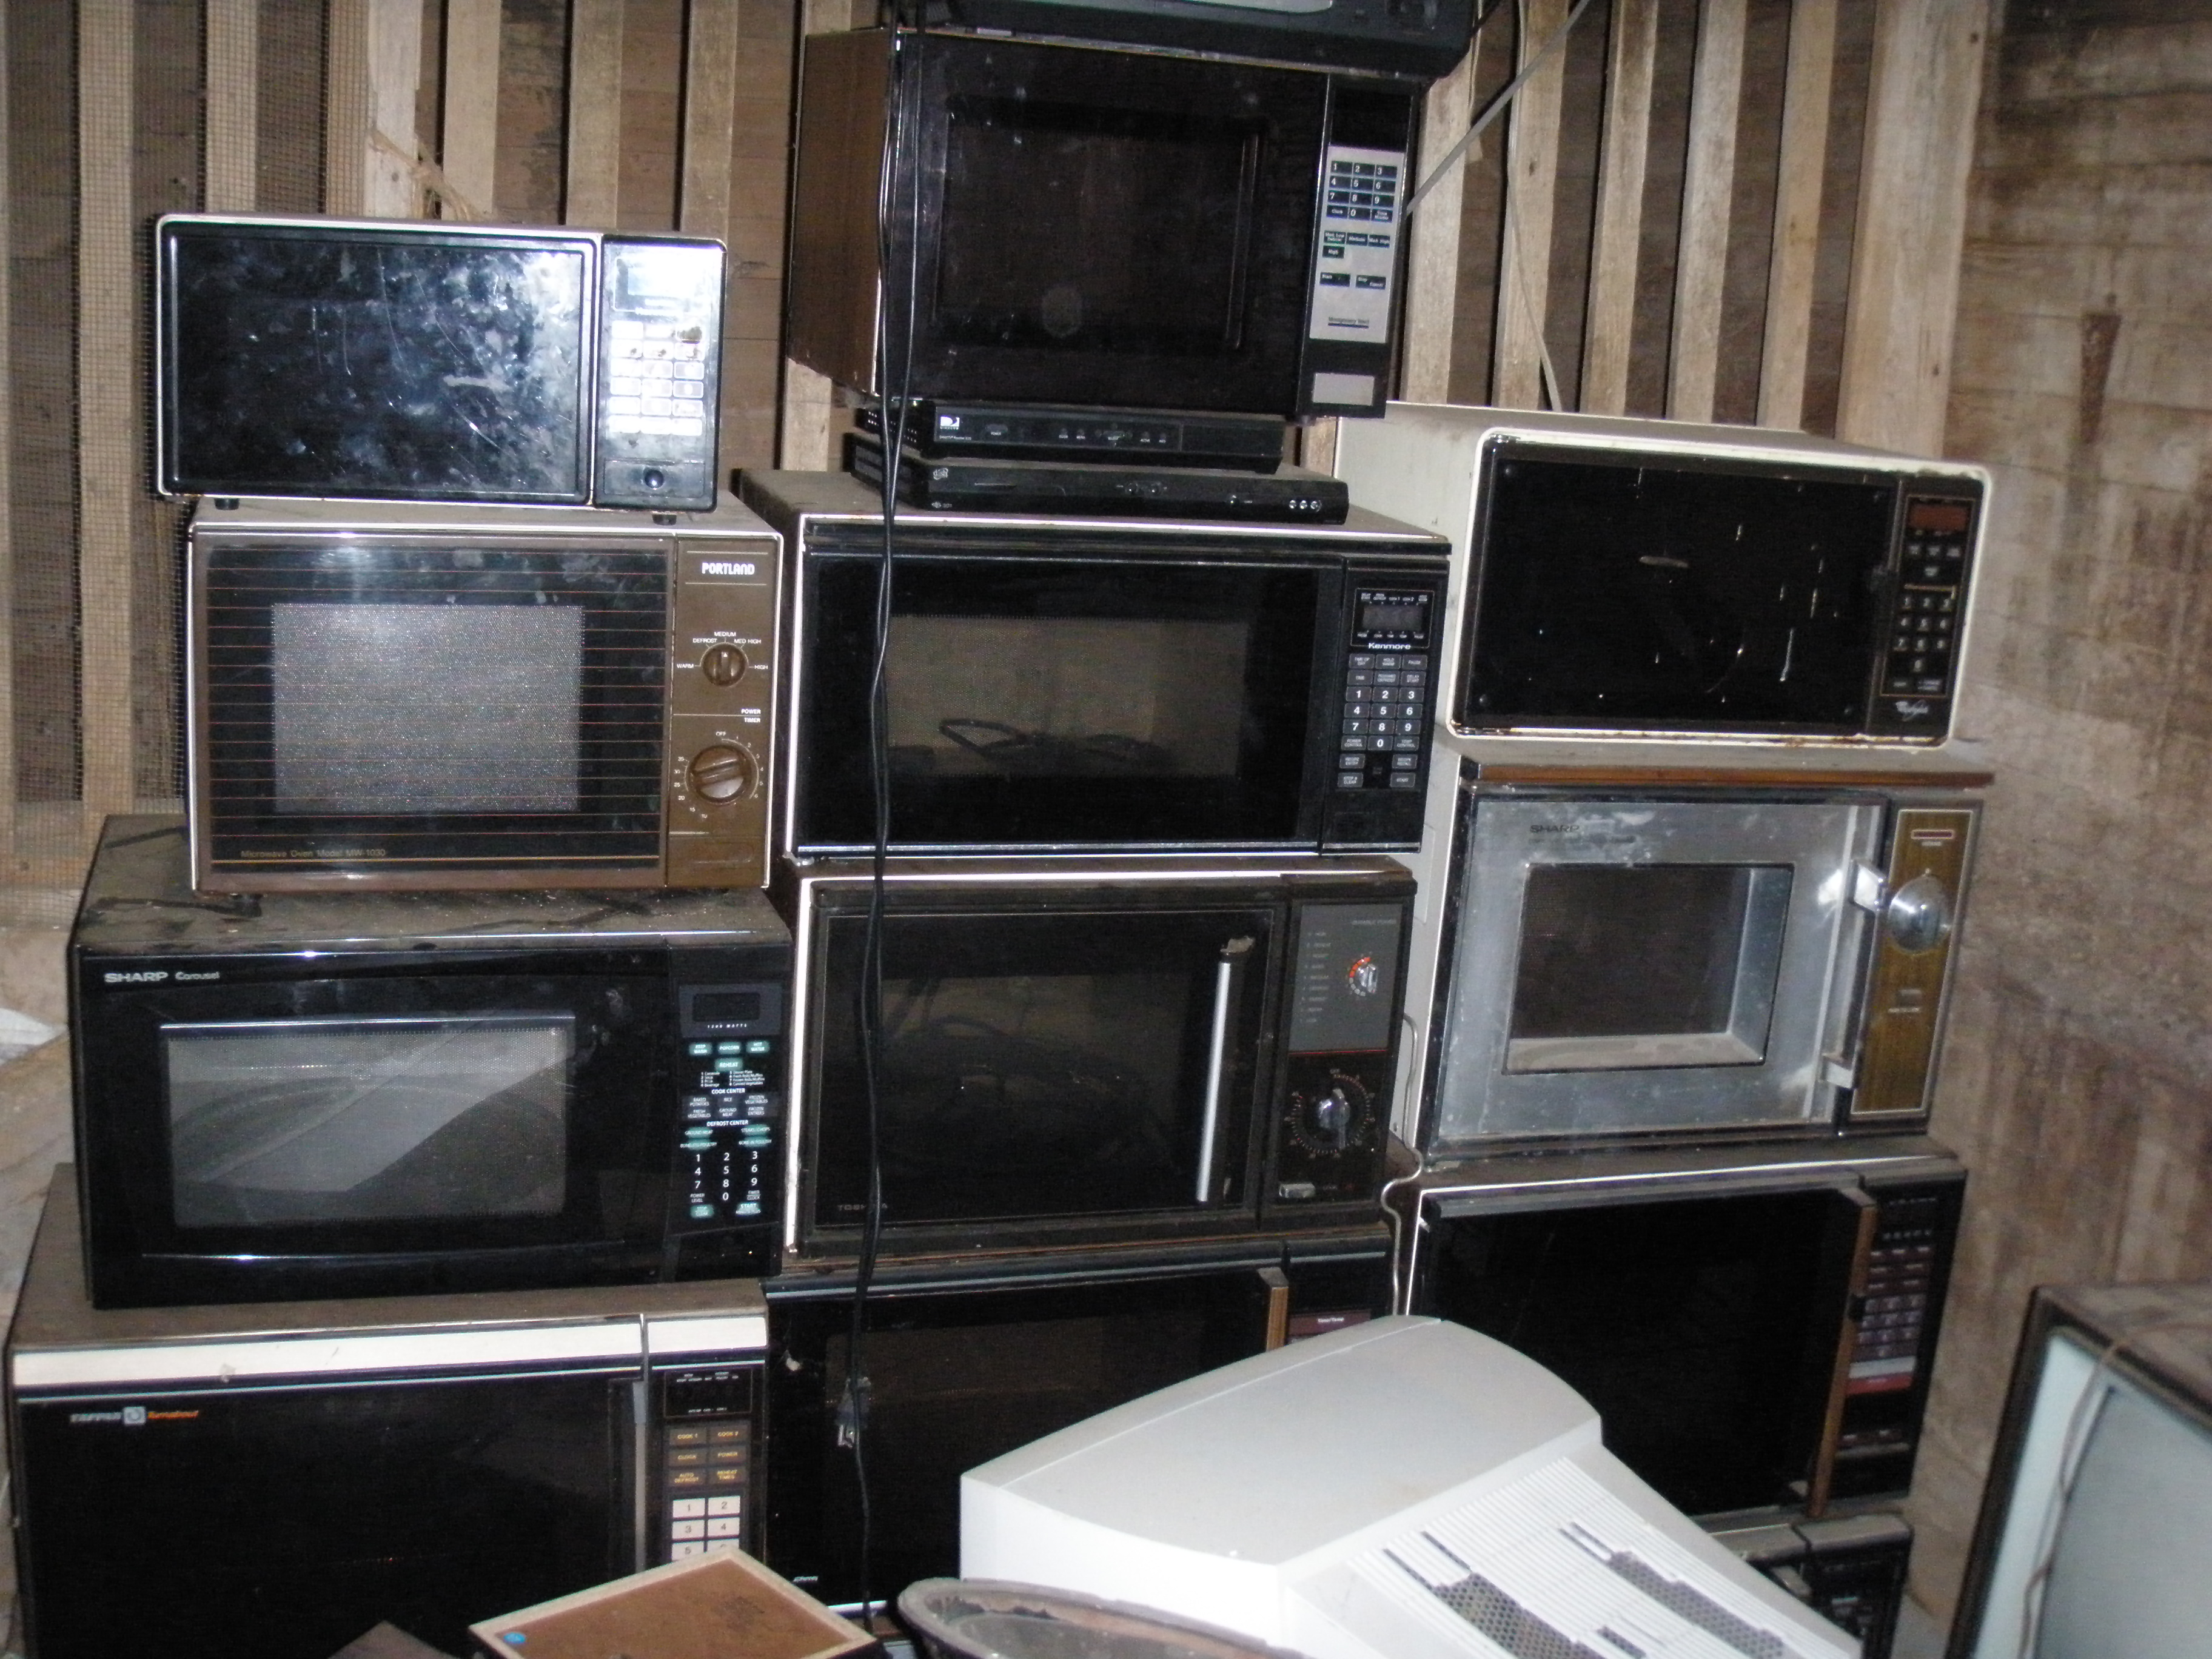 file wall of microwaves jpg wikipedia. Black Bedroom Furniture Sets. Home Design Ideas